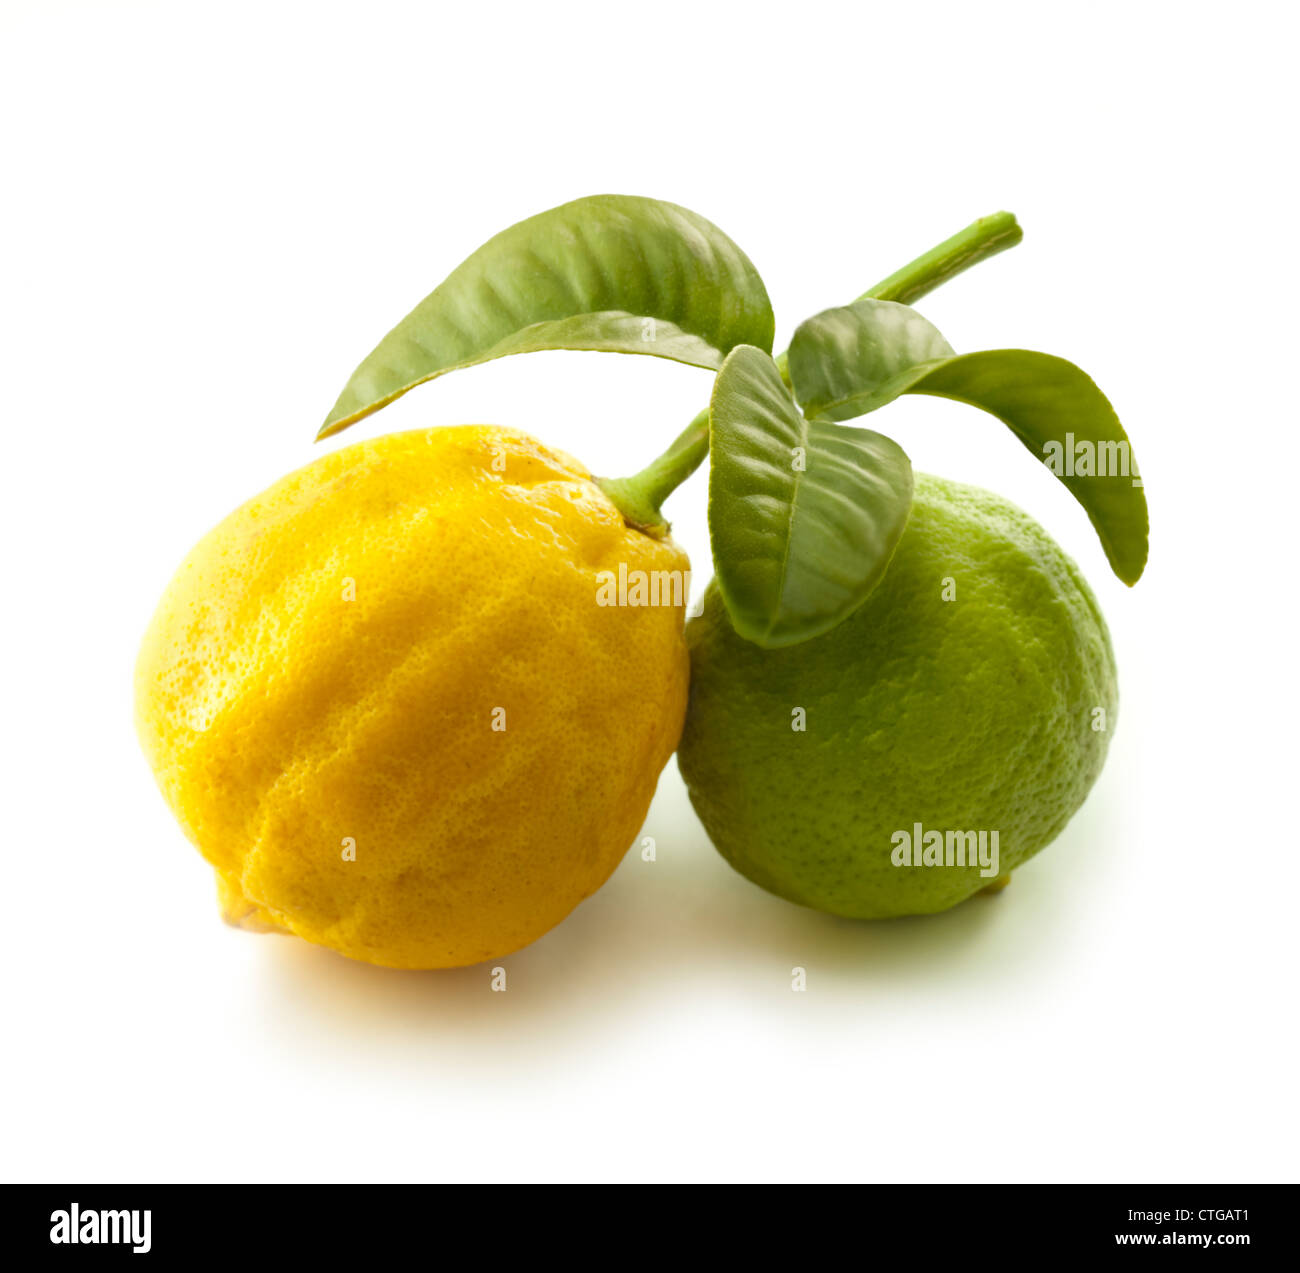 Citrus bergamia, Bergamot, Yellow and green fruit on a leafy stem against a white background. - Stock Image